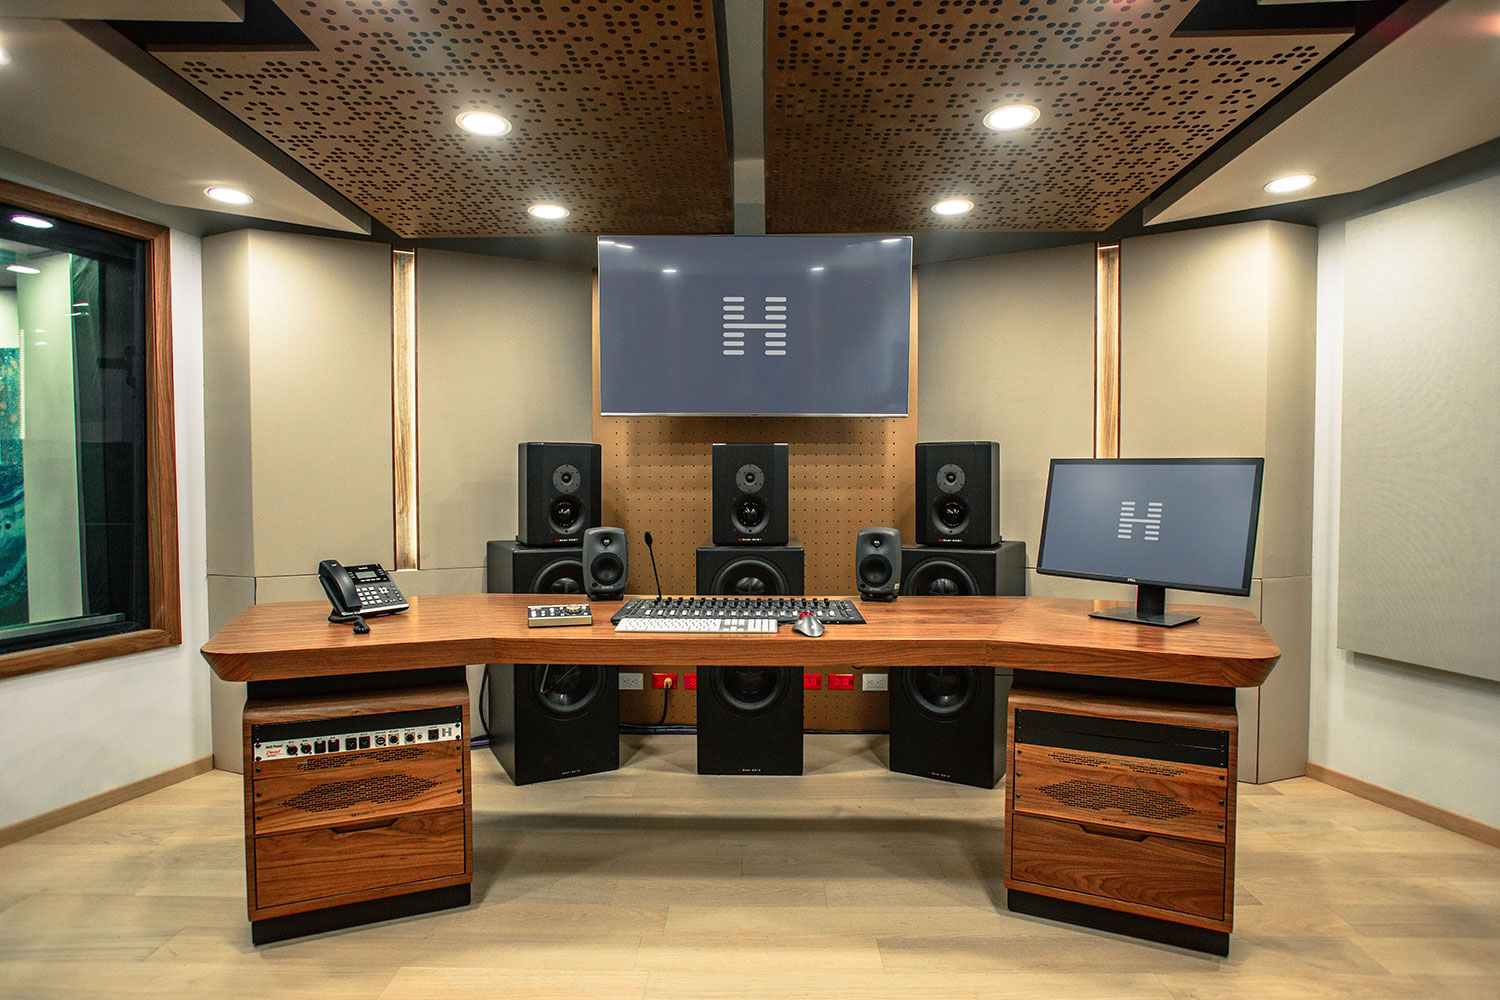 Hogarth Mexico international advertising communications agency studio. WSDG has been retained to create a recording studio complex for the leading international Advertising/Marketing/ Communication company's new Mexico City offices. Control Room Front.